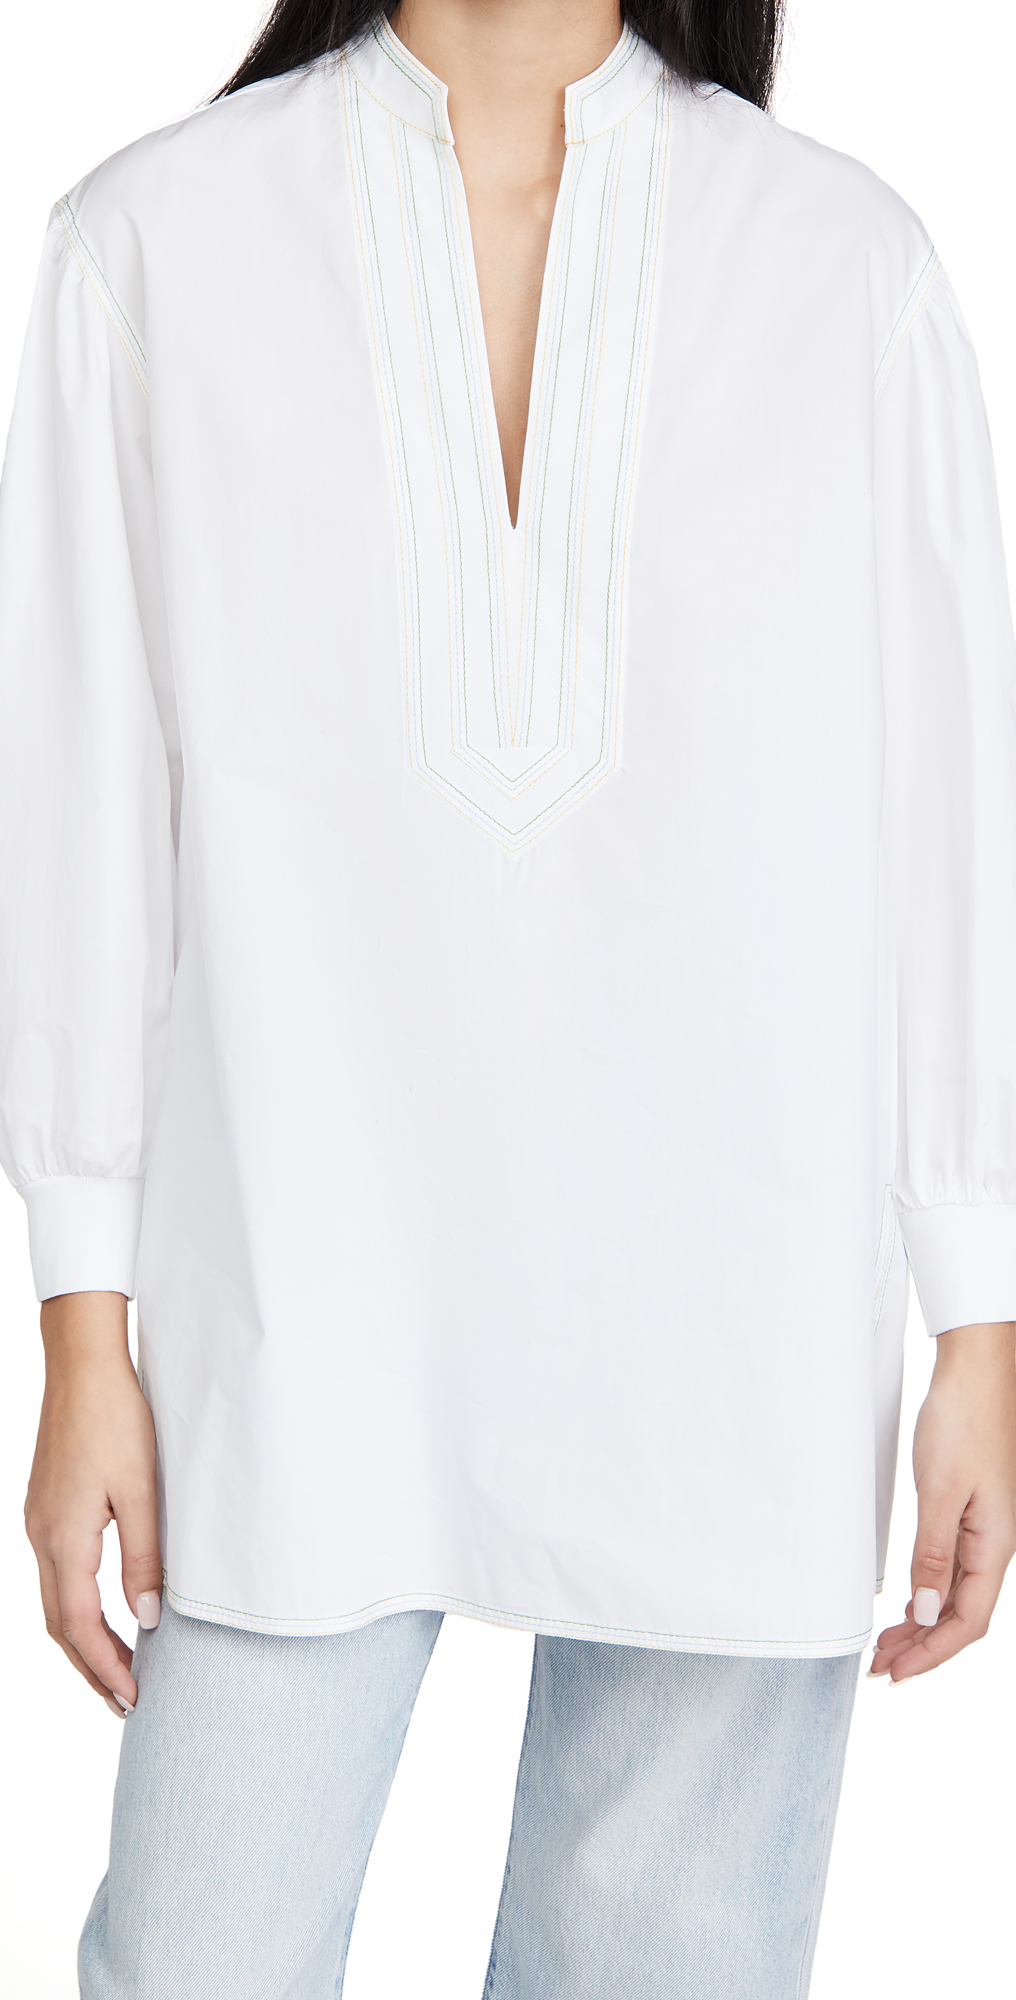 Tory Burch Puffed Sleeve Tunic Blouse